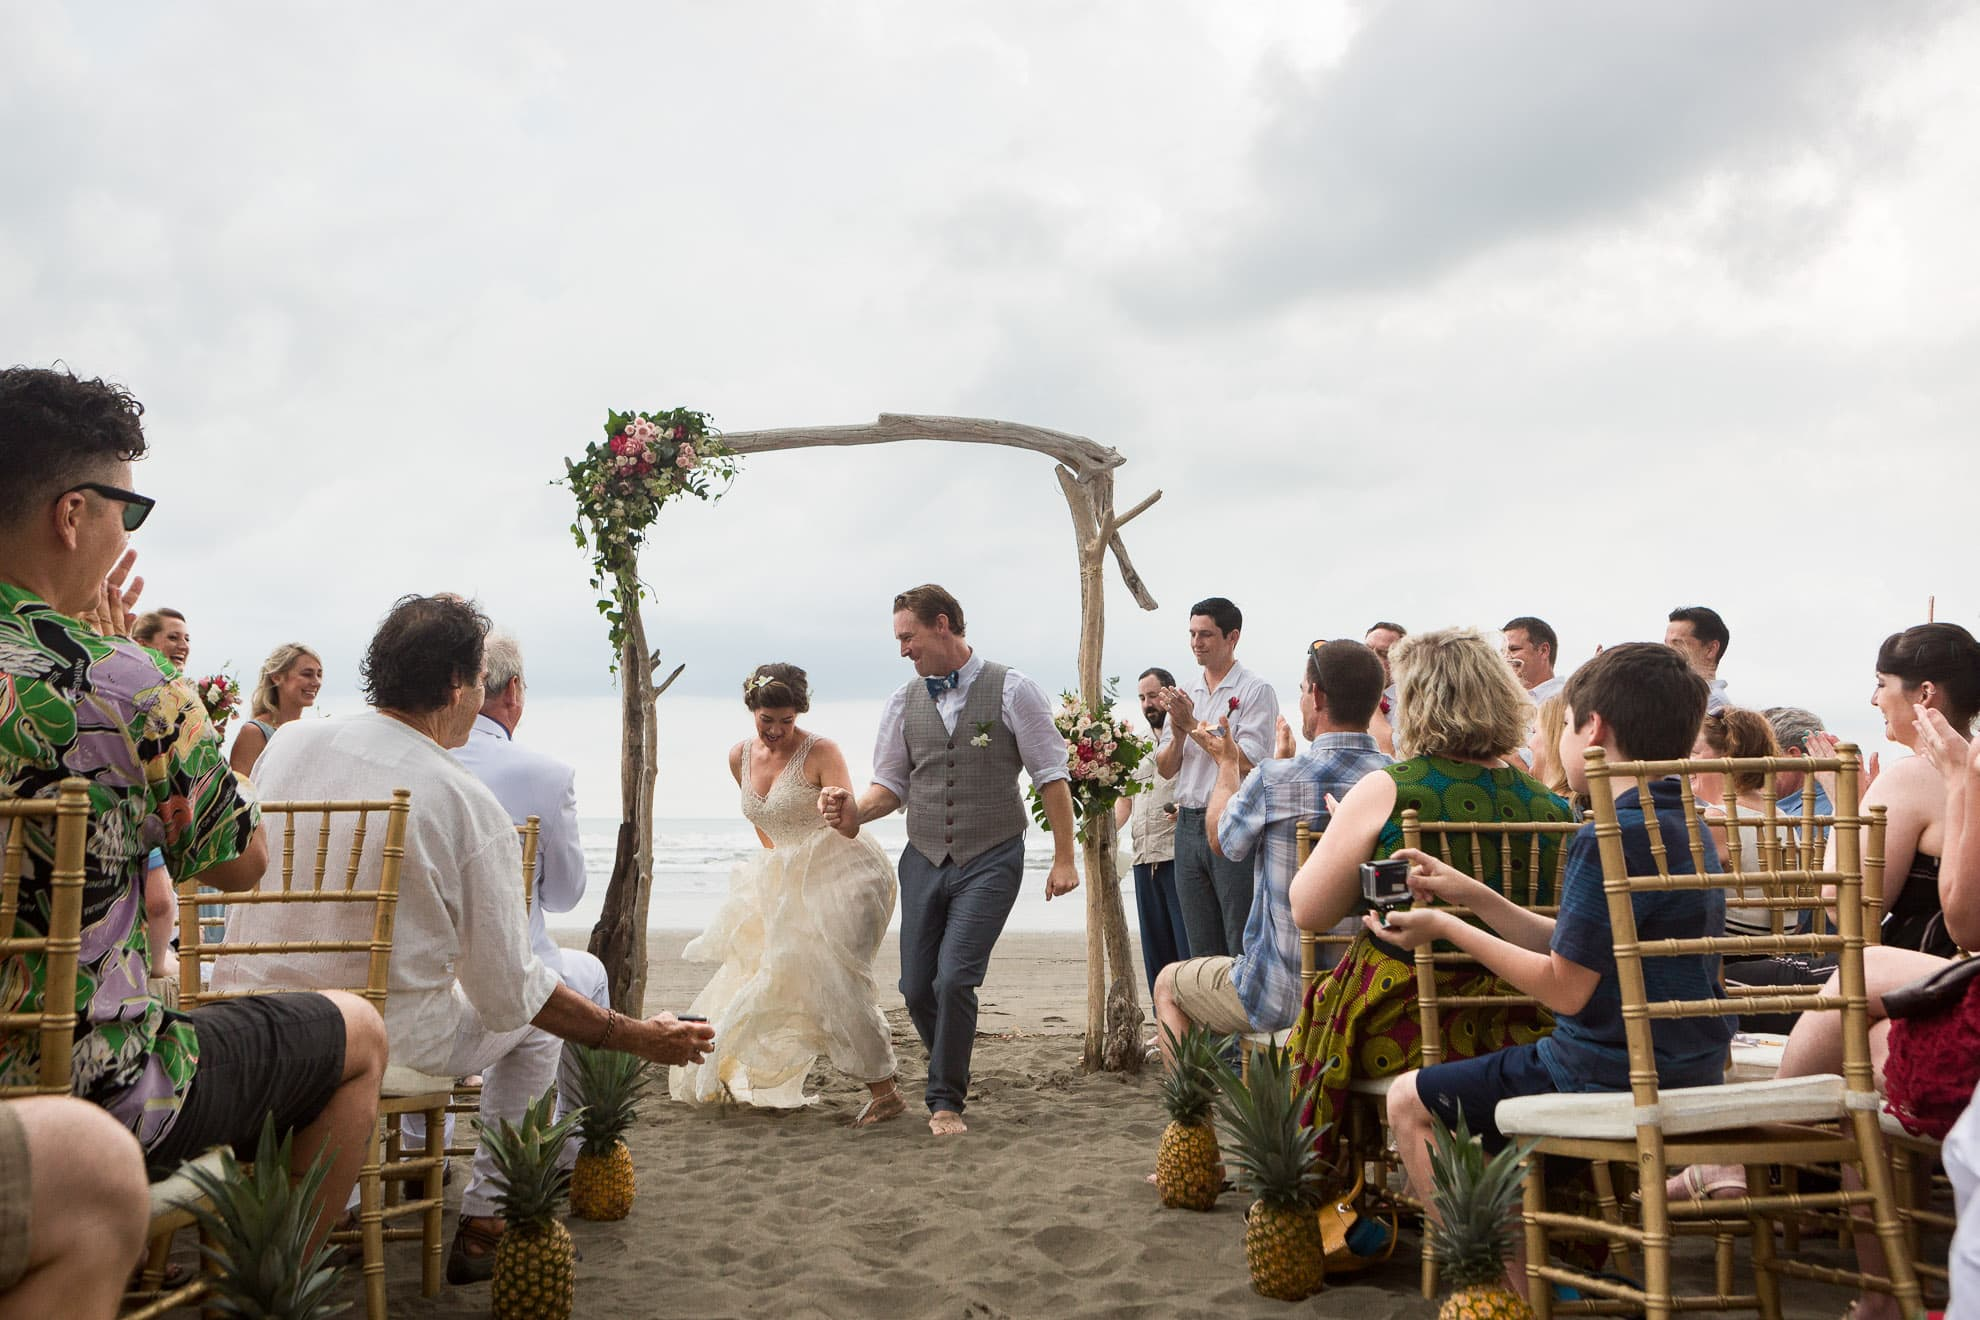 One of the best Jaco beaches in Costa Rica for a wedding!